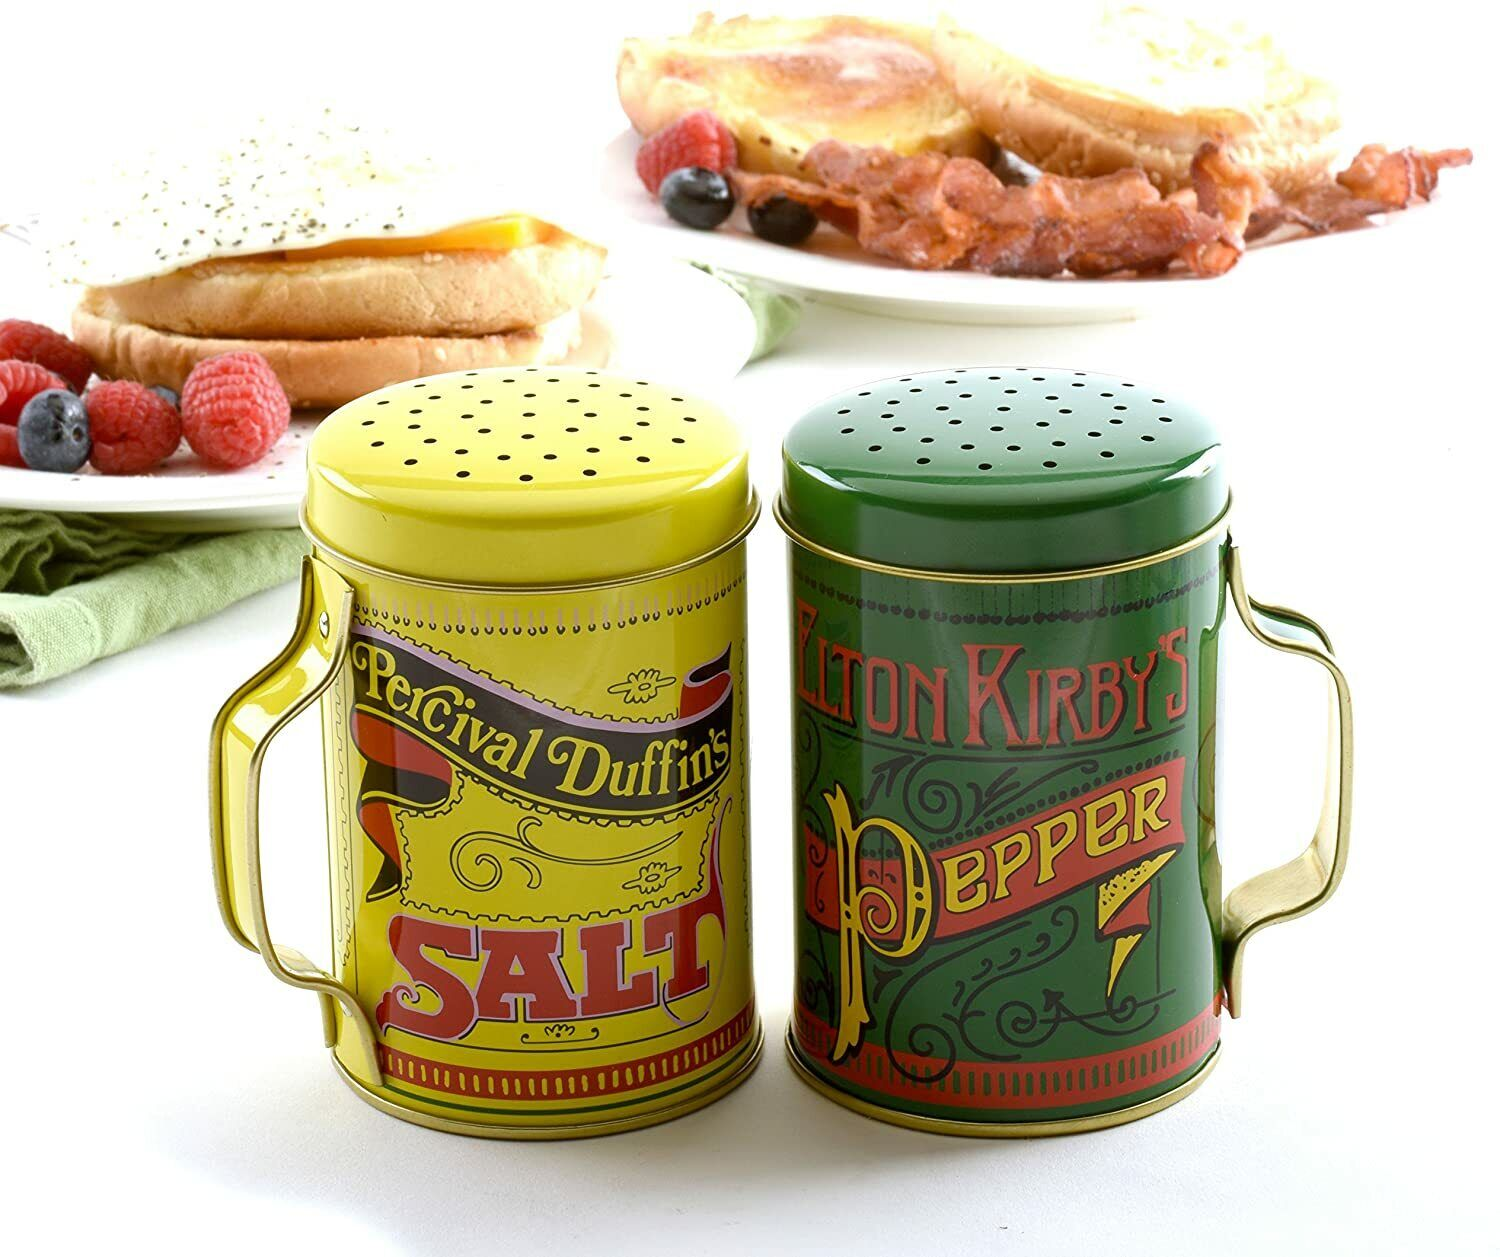 Salt And Pepper Shaker Set, 4in // 10cm 10oz Capacity, Multicolor Very Stylish - $9.99